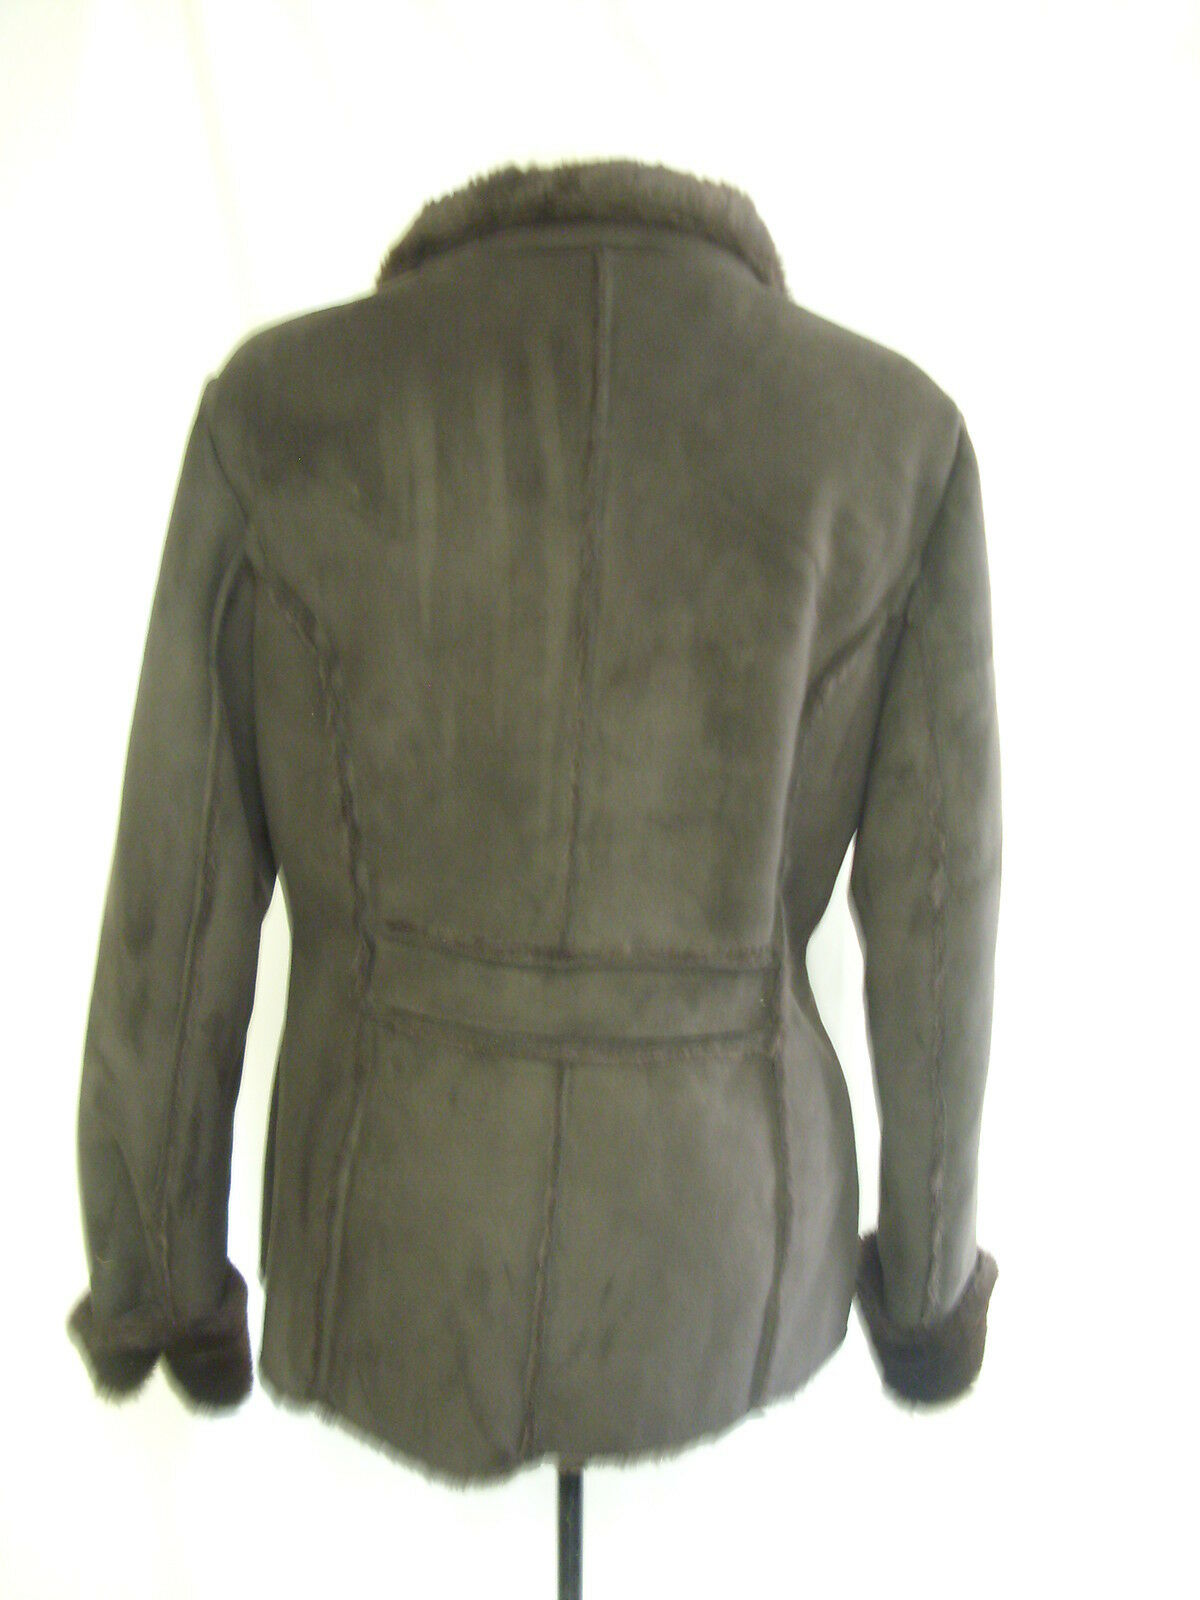 Ladies Coat - Avenue, Size 14, Chocolate Brown, 100% Polyester,- 1568